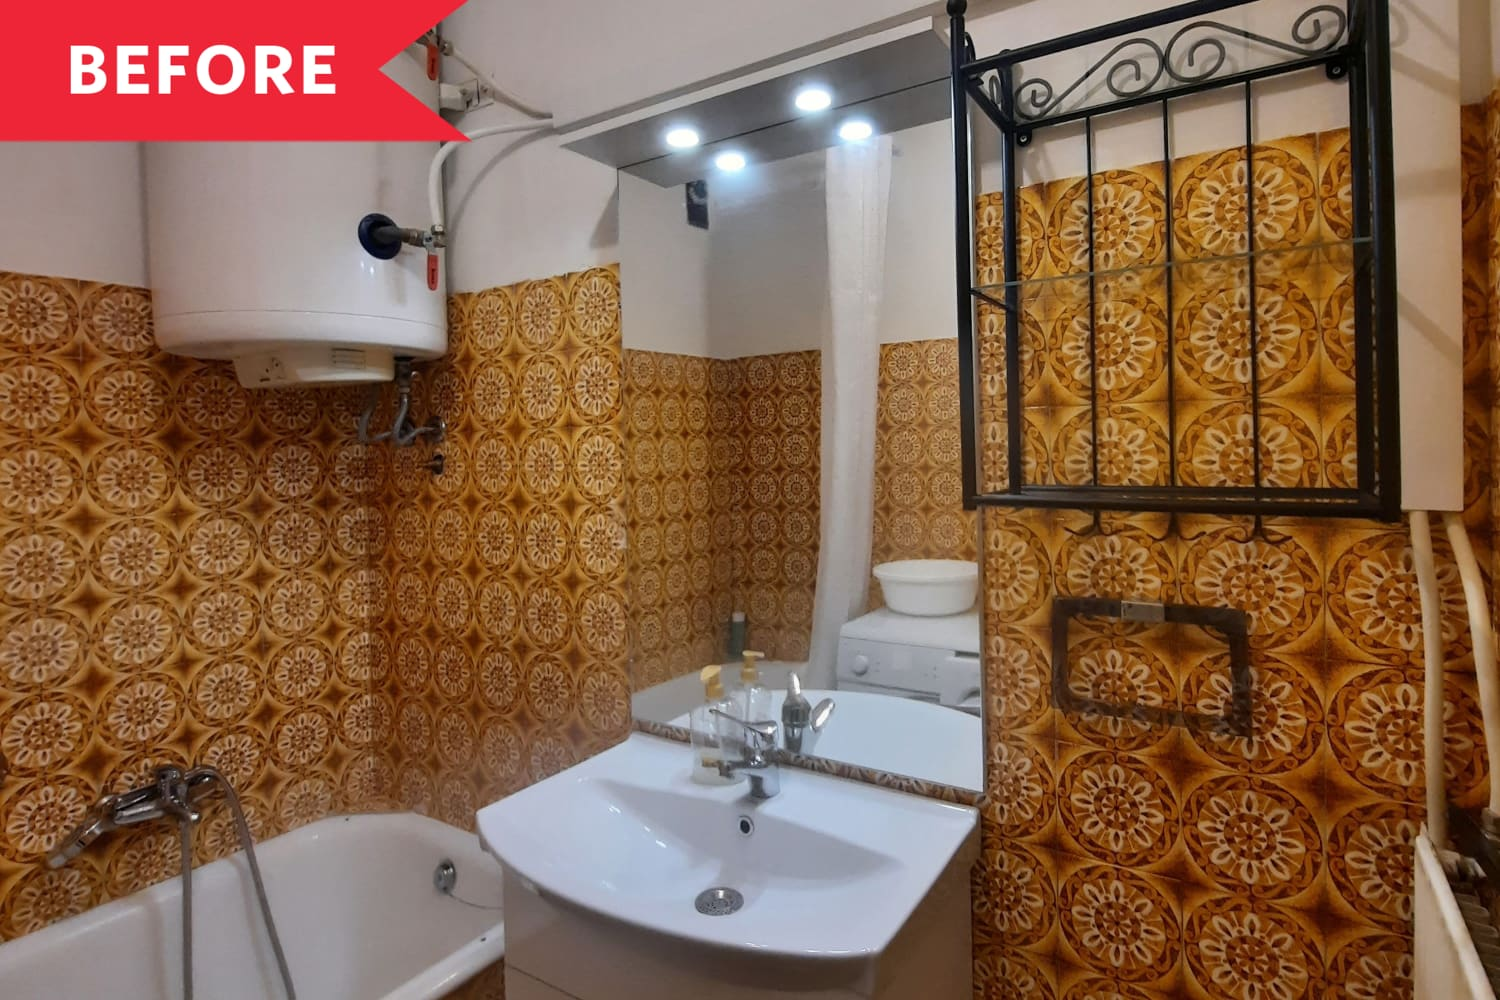 Before and After: A Dirty, Stained Bathroom Gets a Colorful $78 Revamp